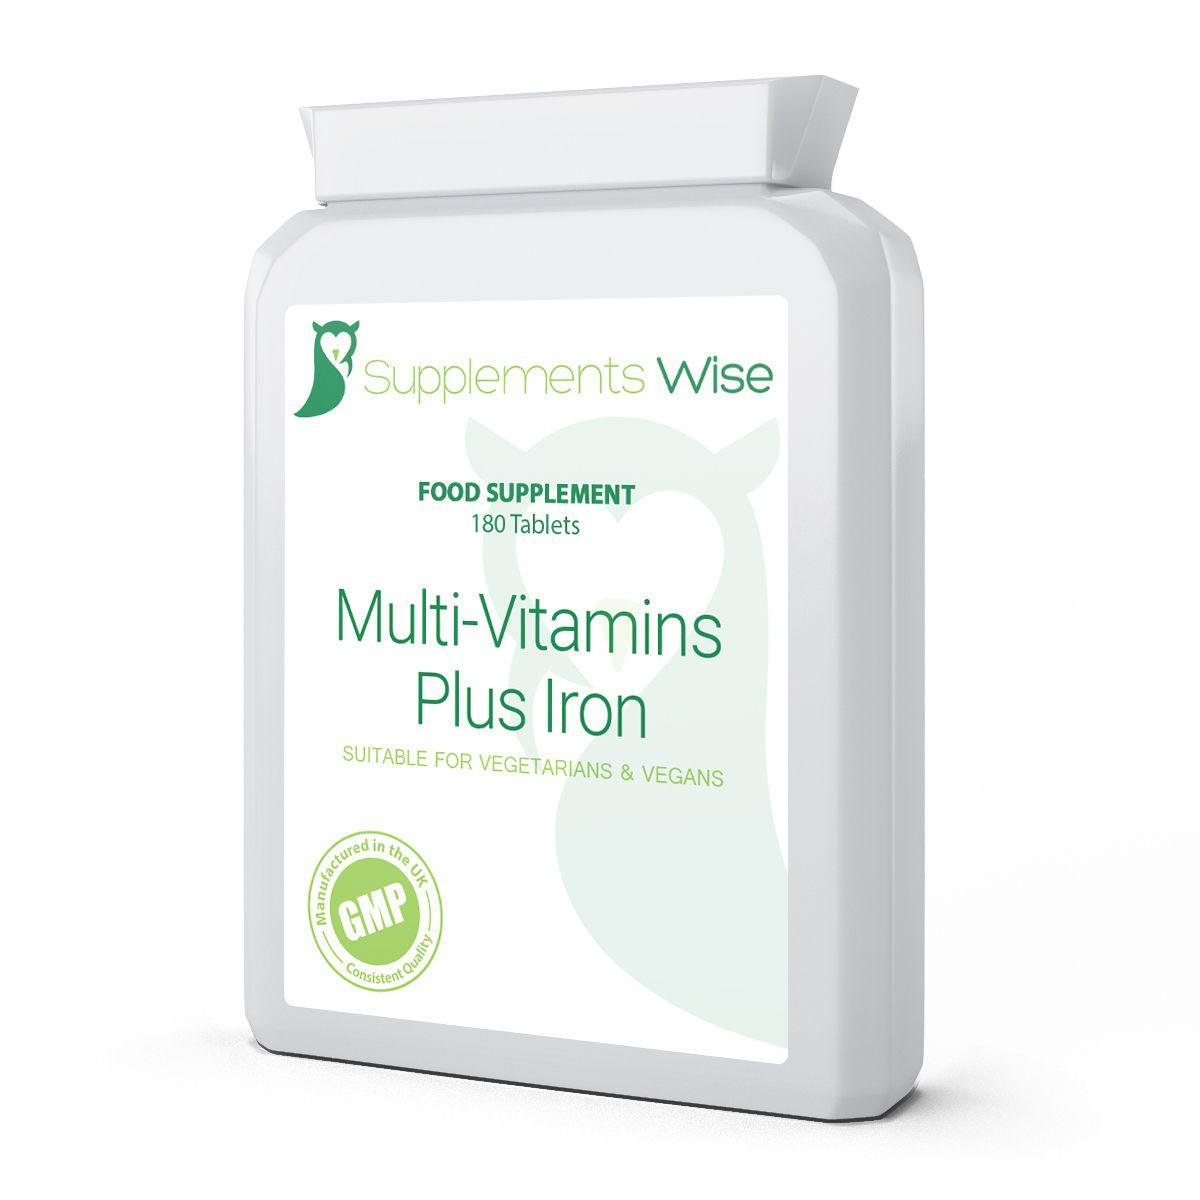 multi-vitamins plus iron